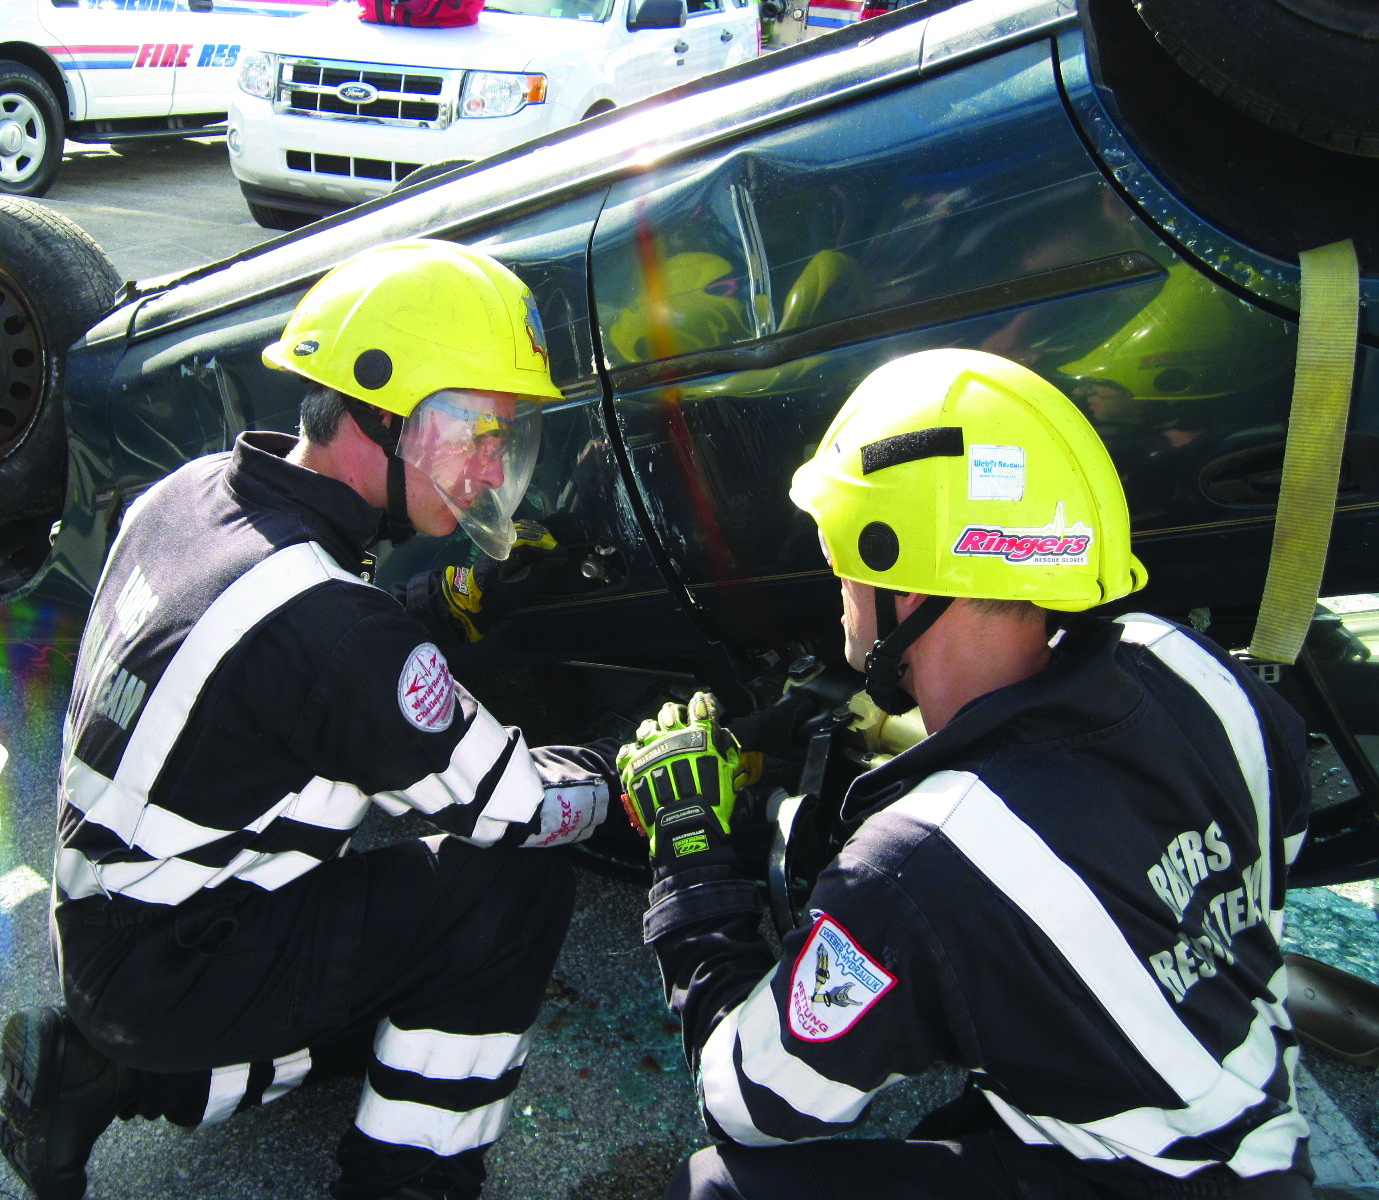 World Rescue Challenge is coming to the Fire Service College